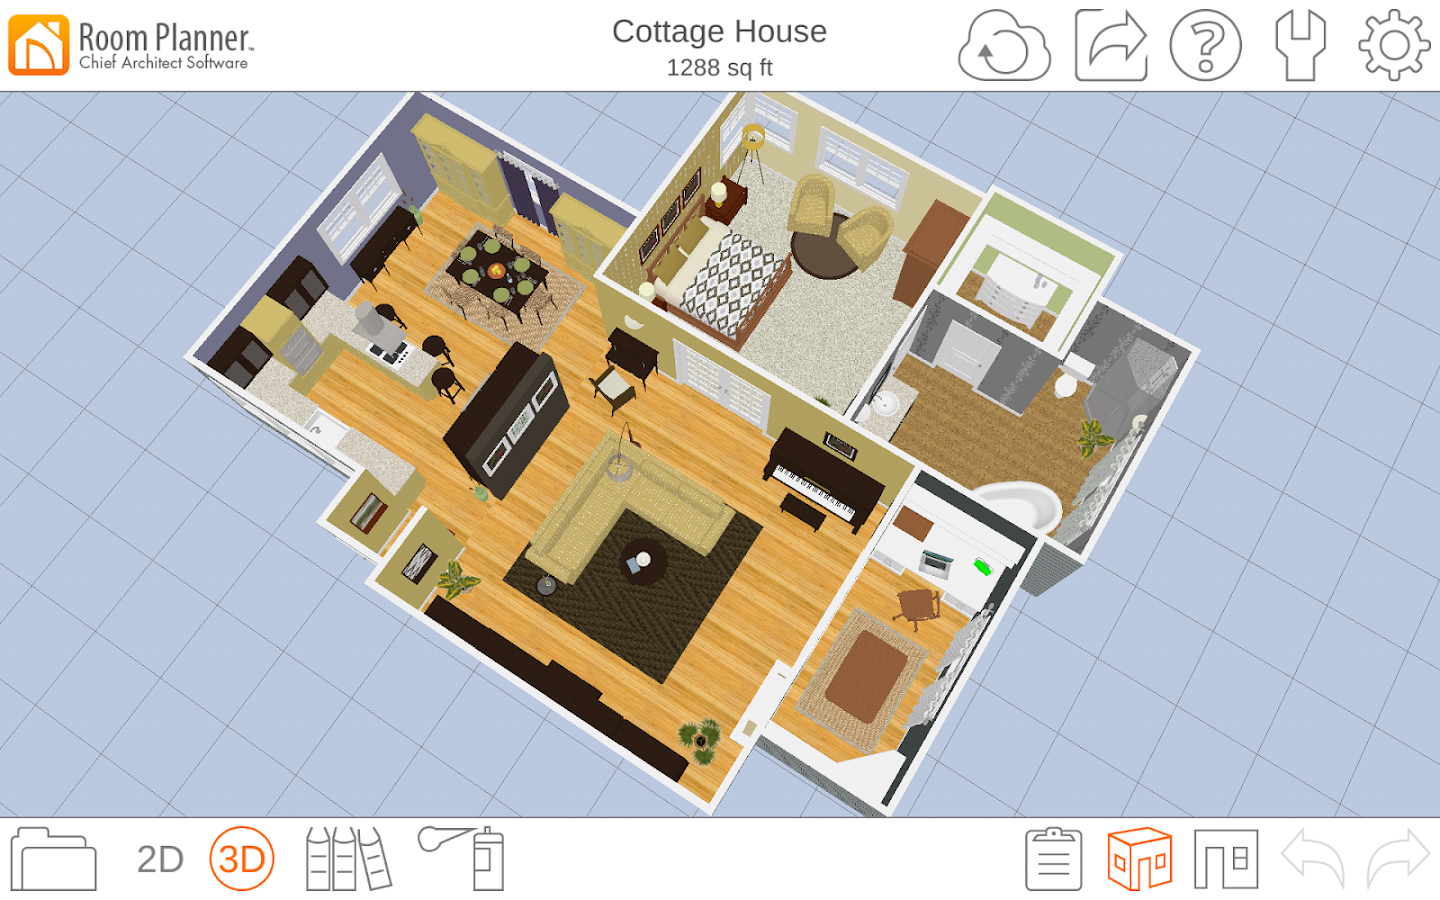 Room planner home design android apps on google play Room planner free